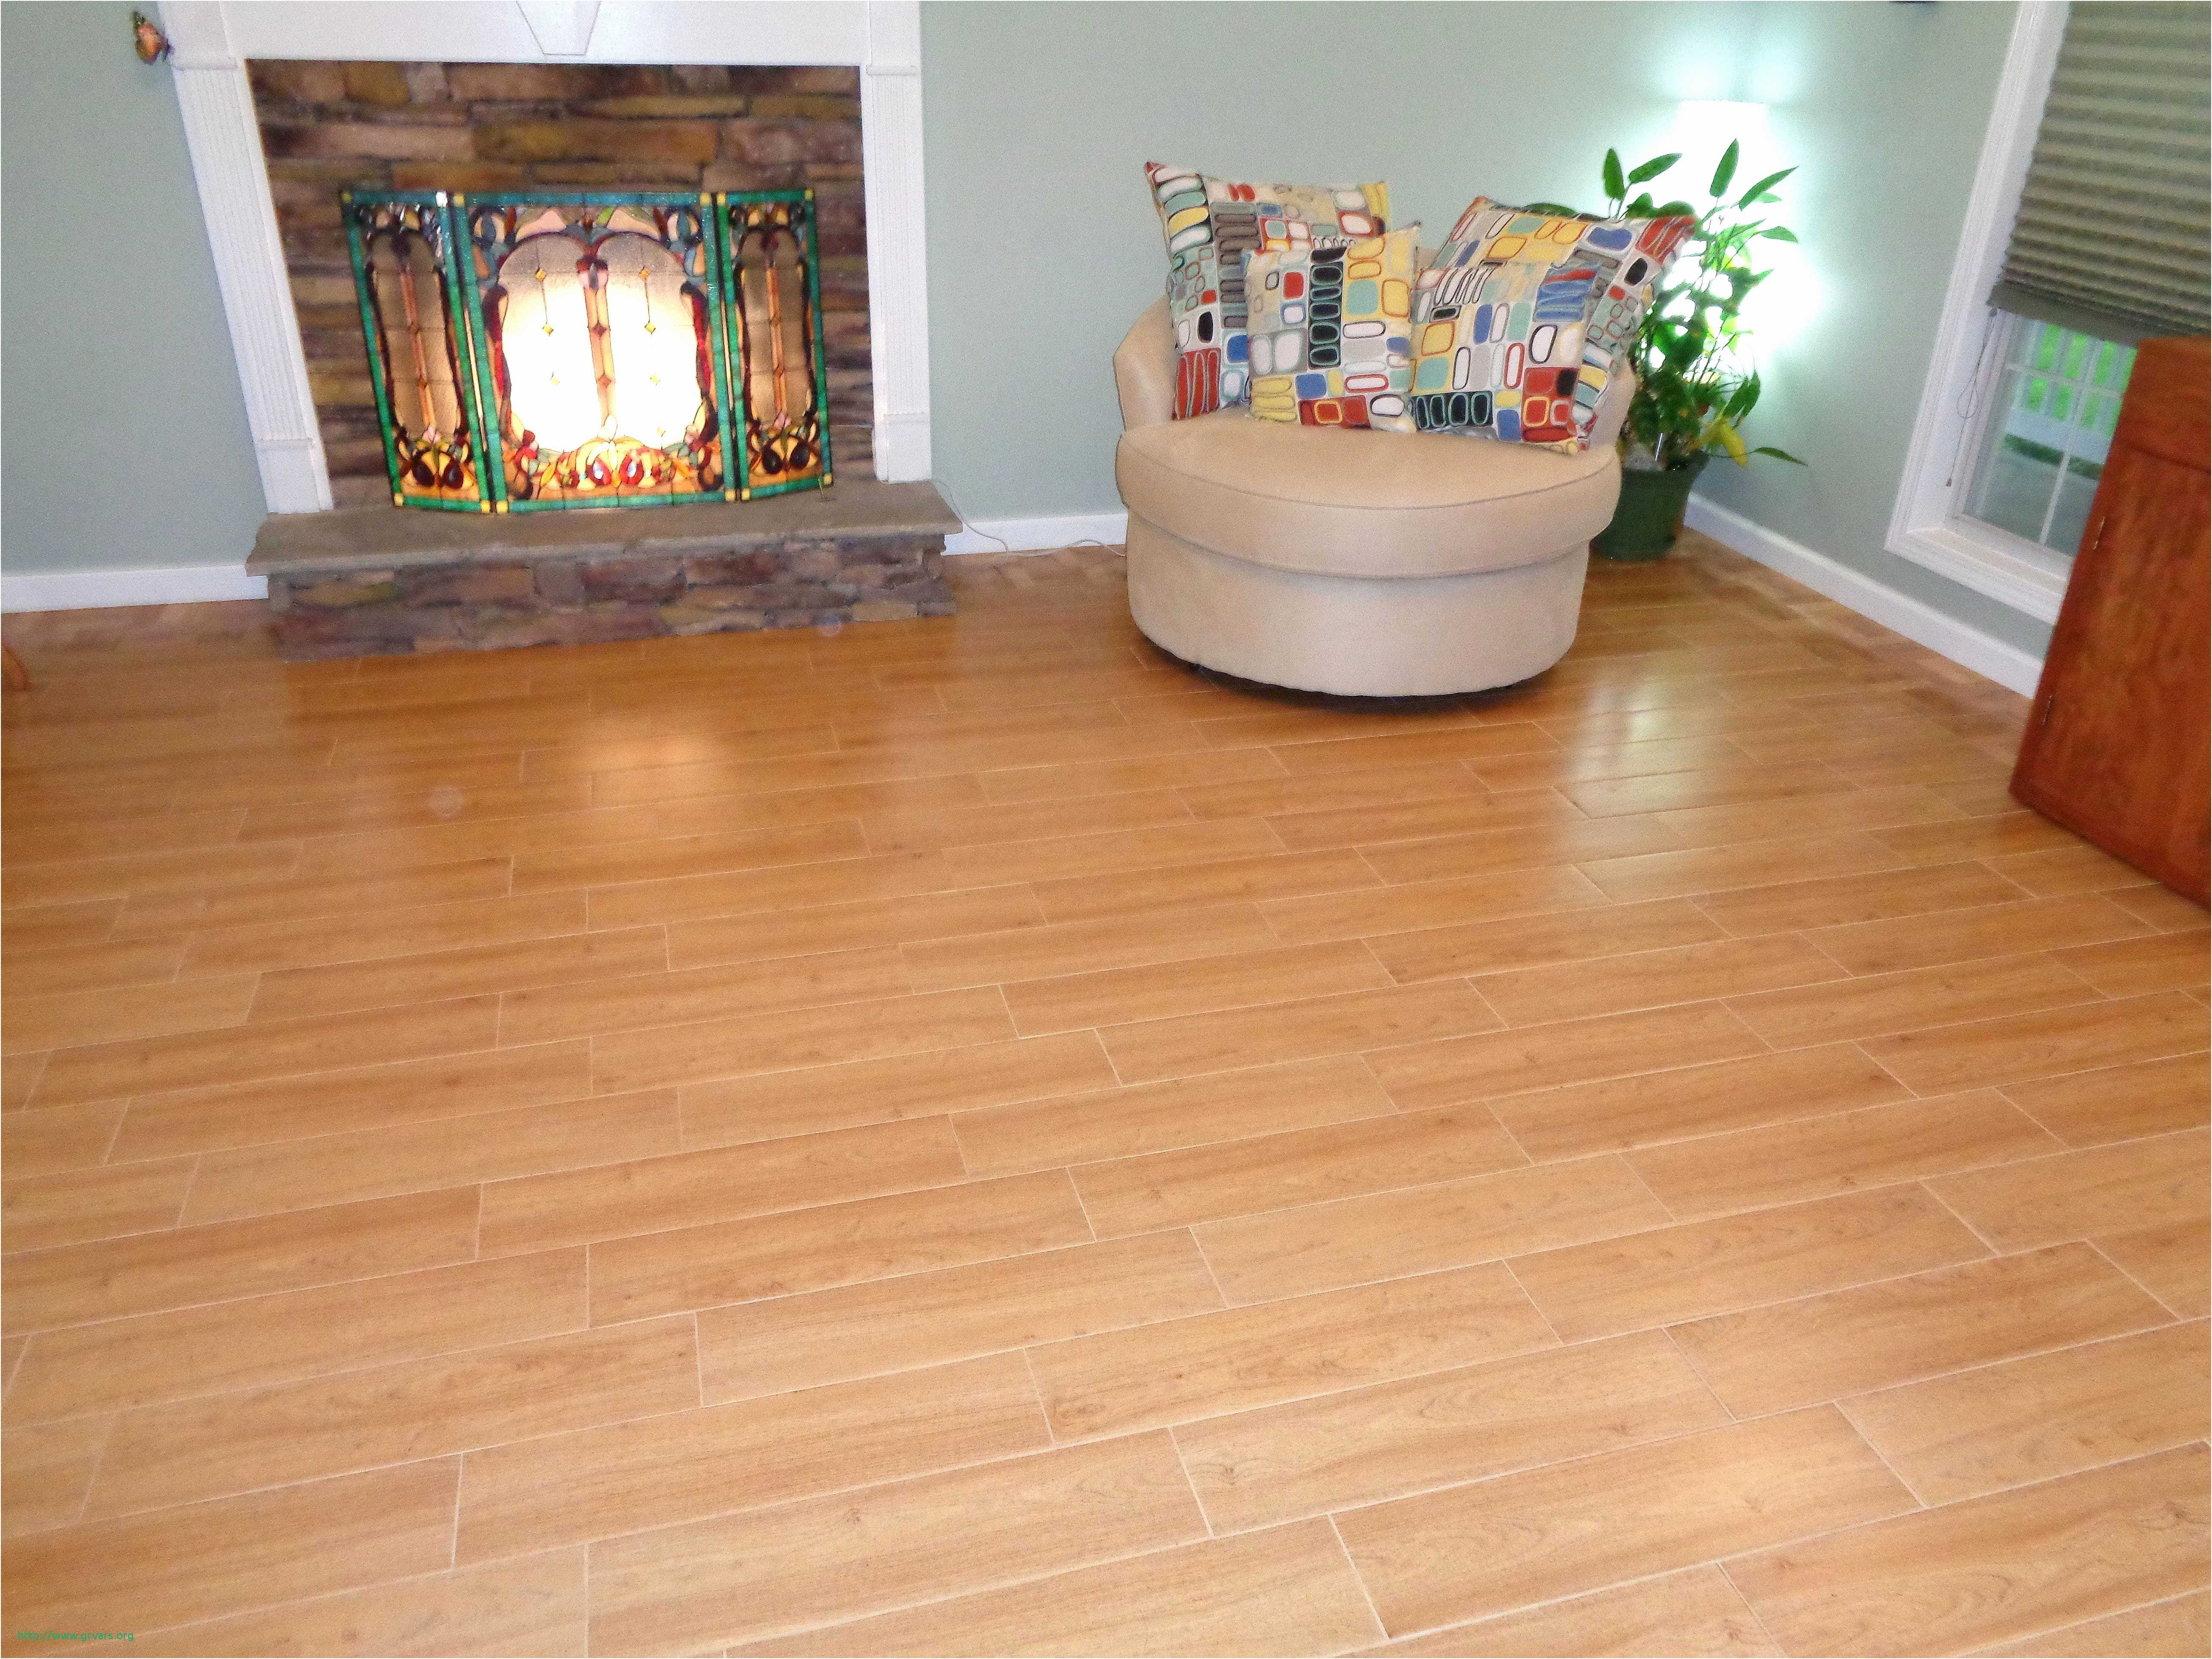 golden hickory hardwood flooring of 16 inspirant how to lay out wood flooring ideas blog with regard to how to lay out wood flooring impressionnant laminate wood flooring sale mullican muirfield oak granite 5quot